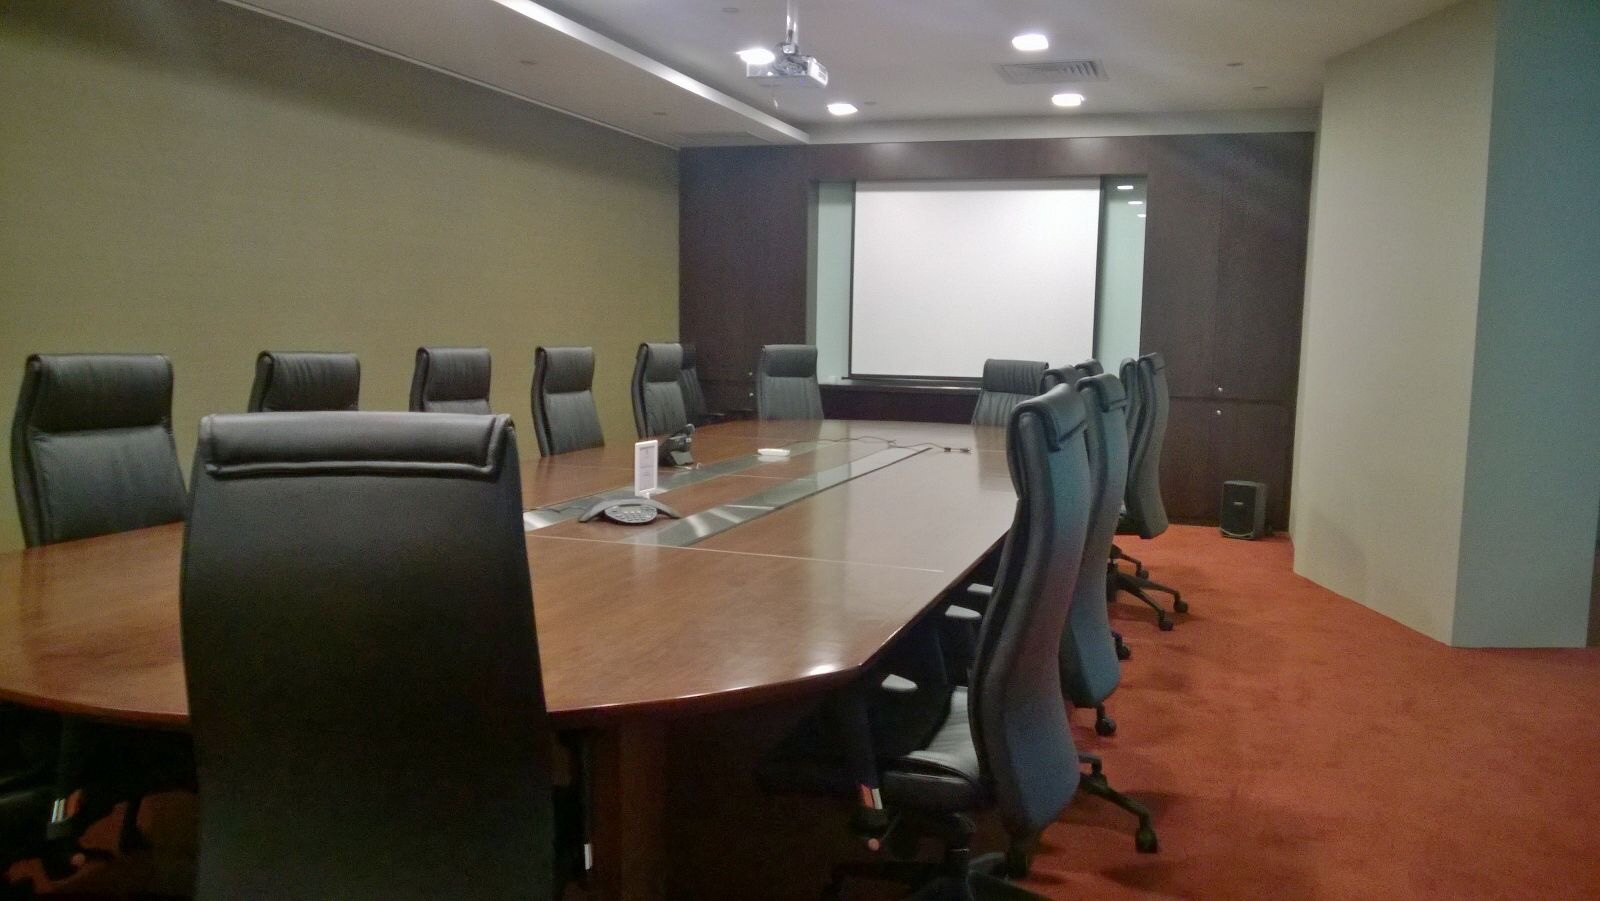 Workcentral Meeting Room In Singapore - Kowrk